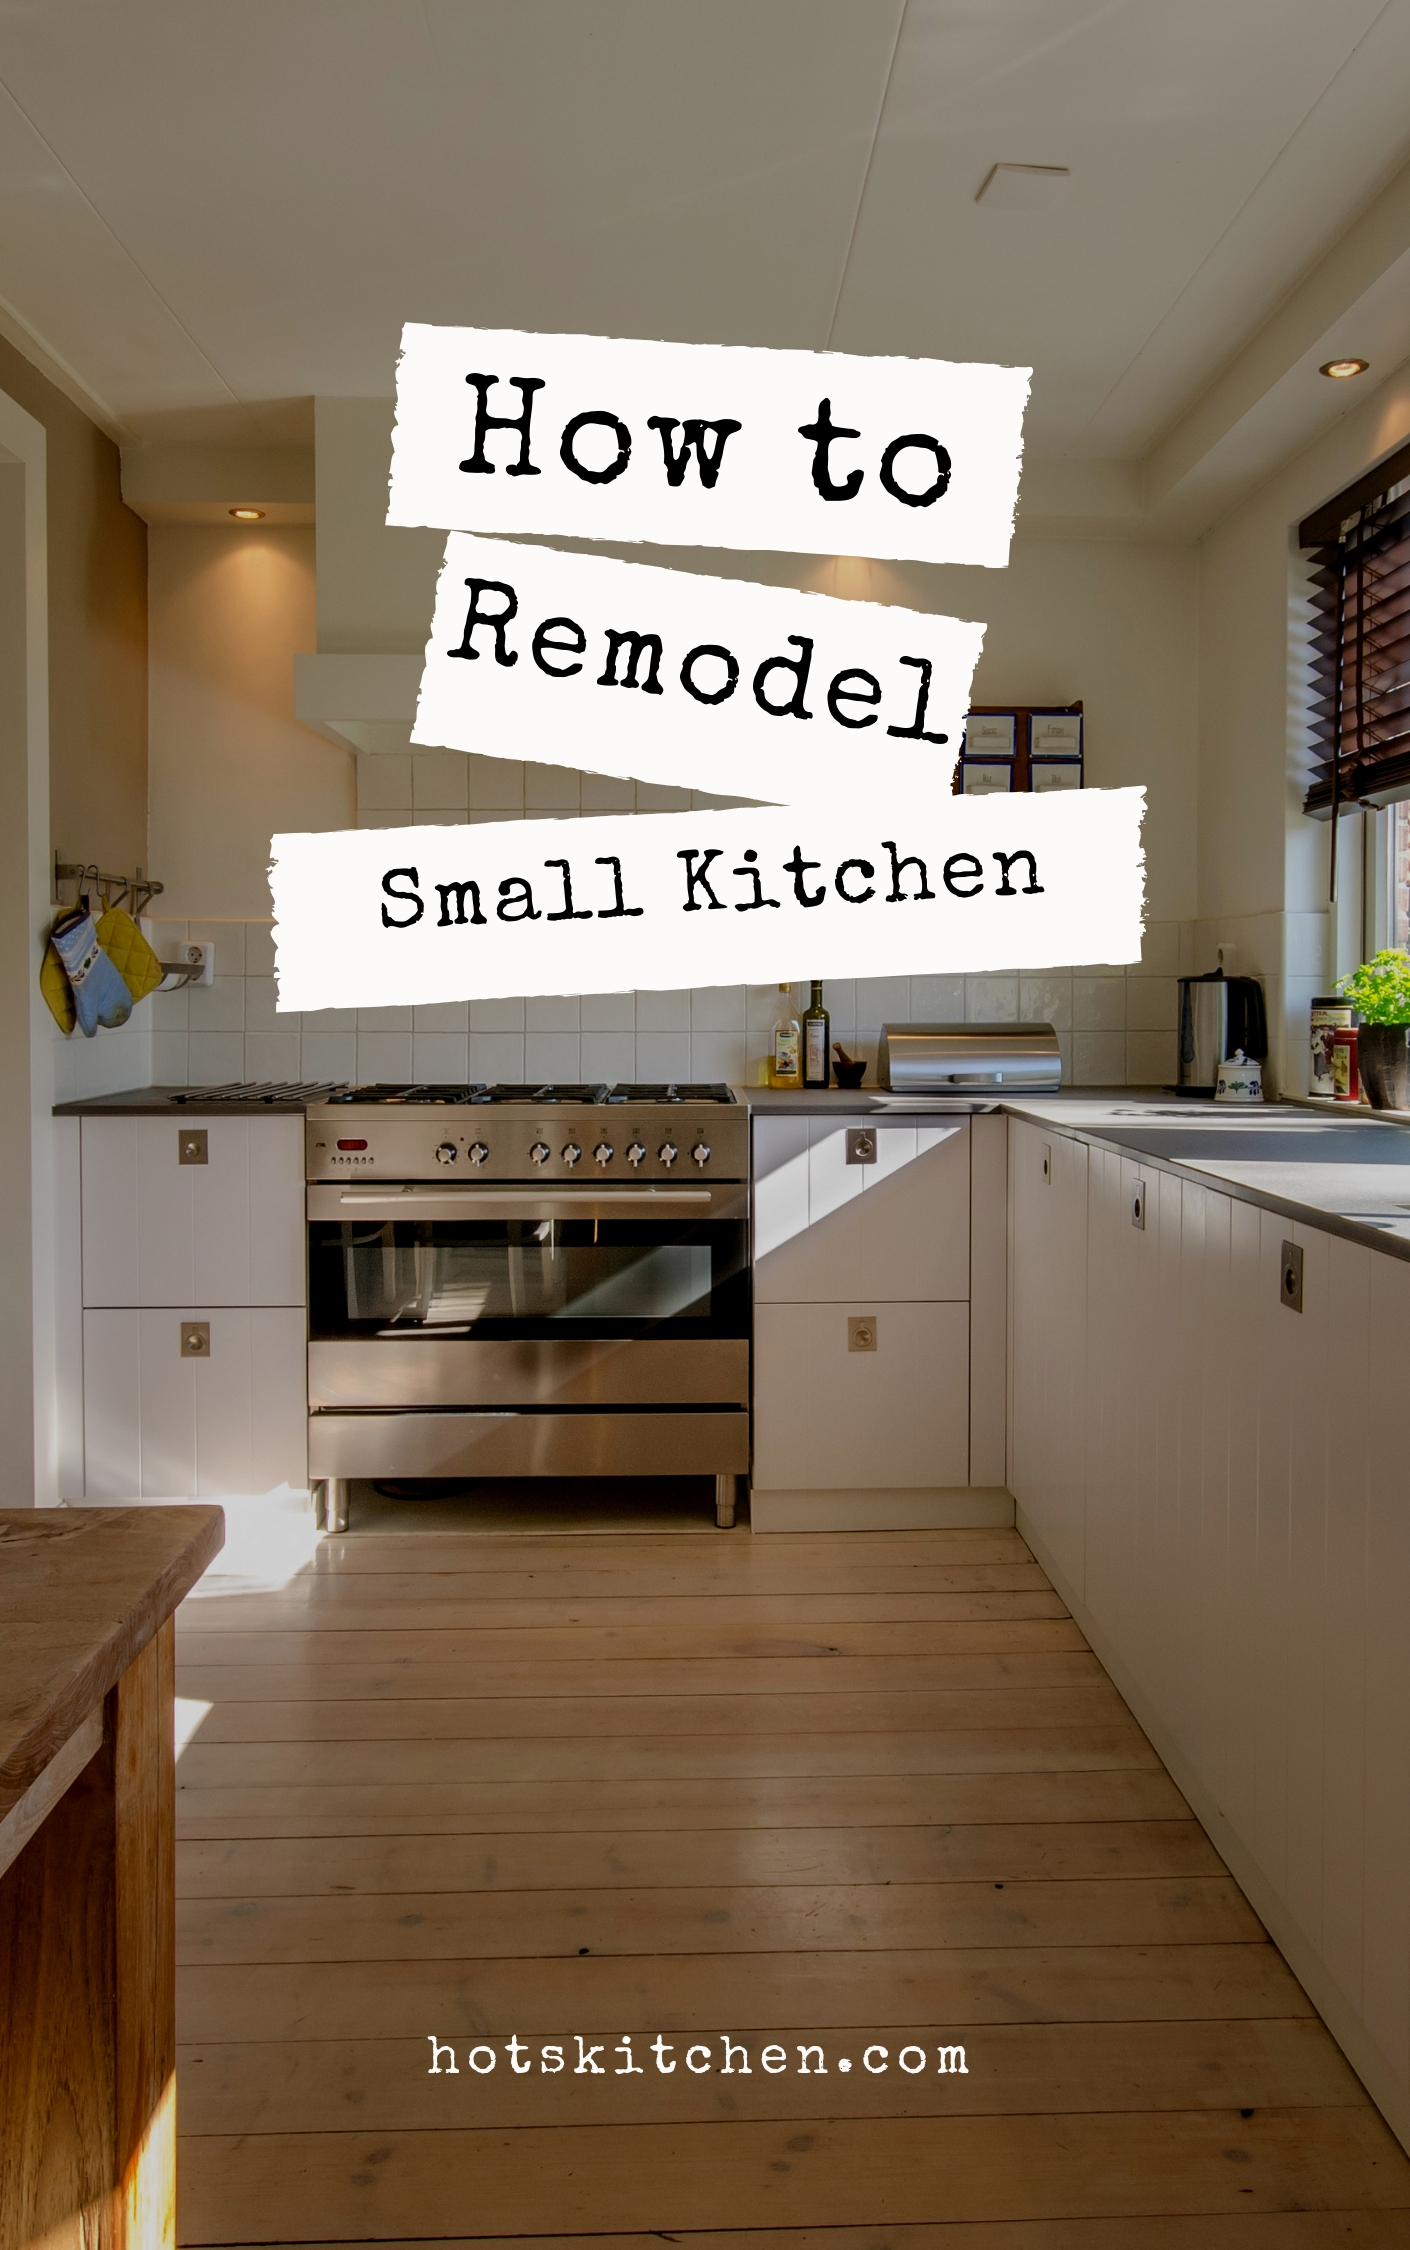 30 Small Kitchen Remodel Ideas Before And After 2020 Trend